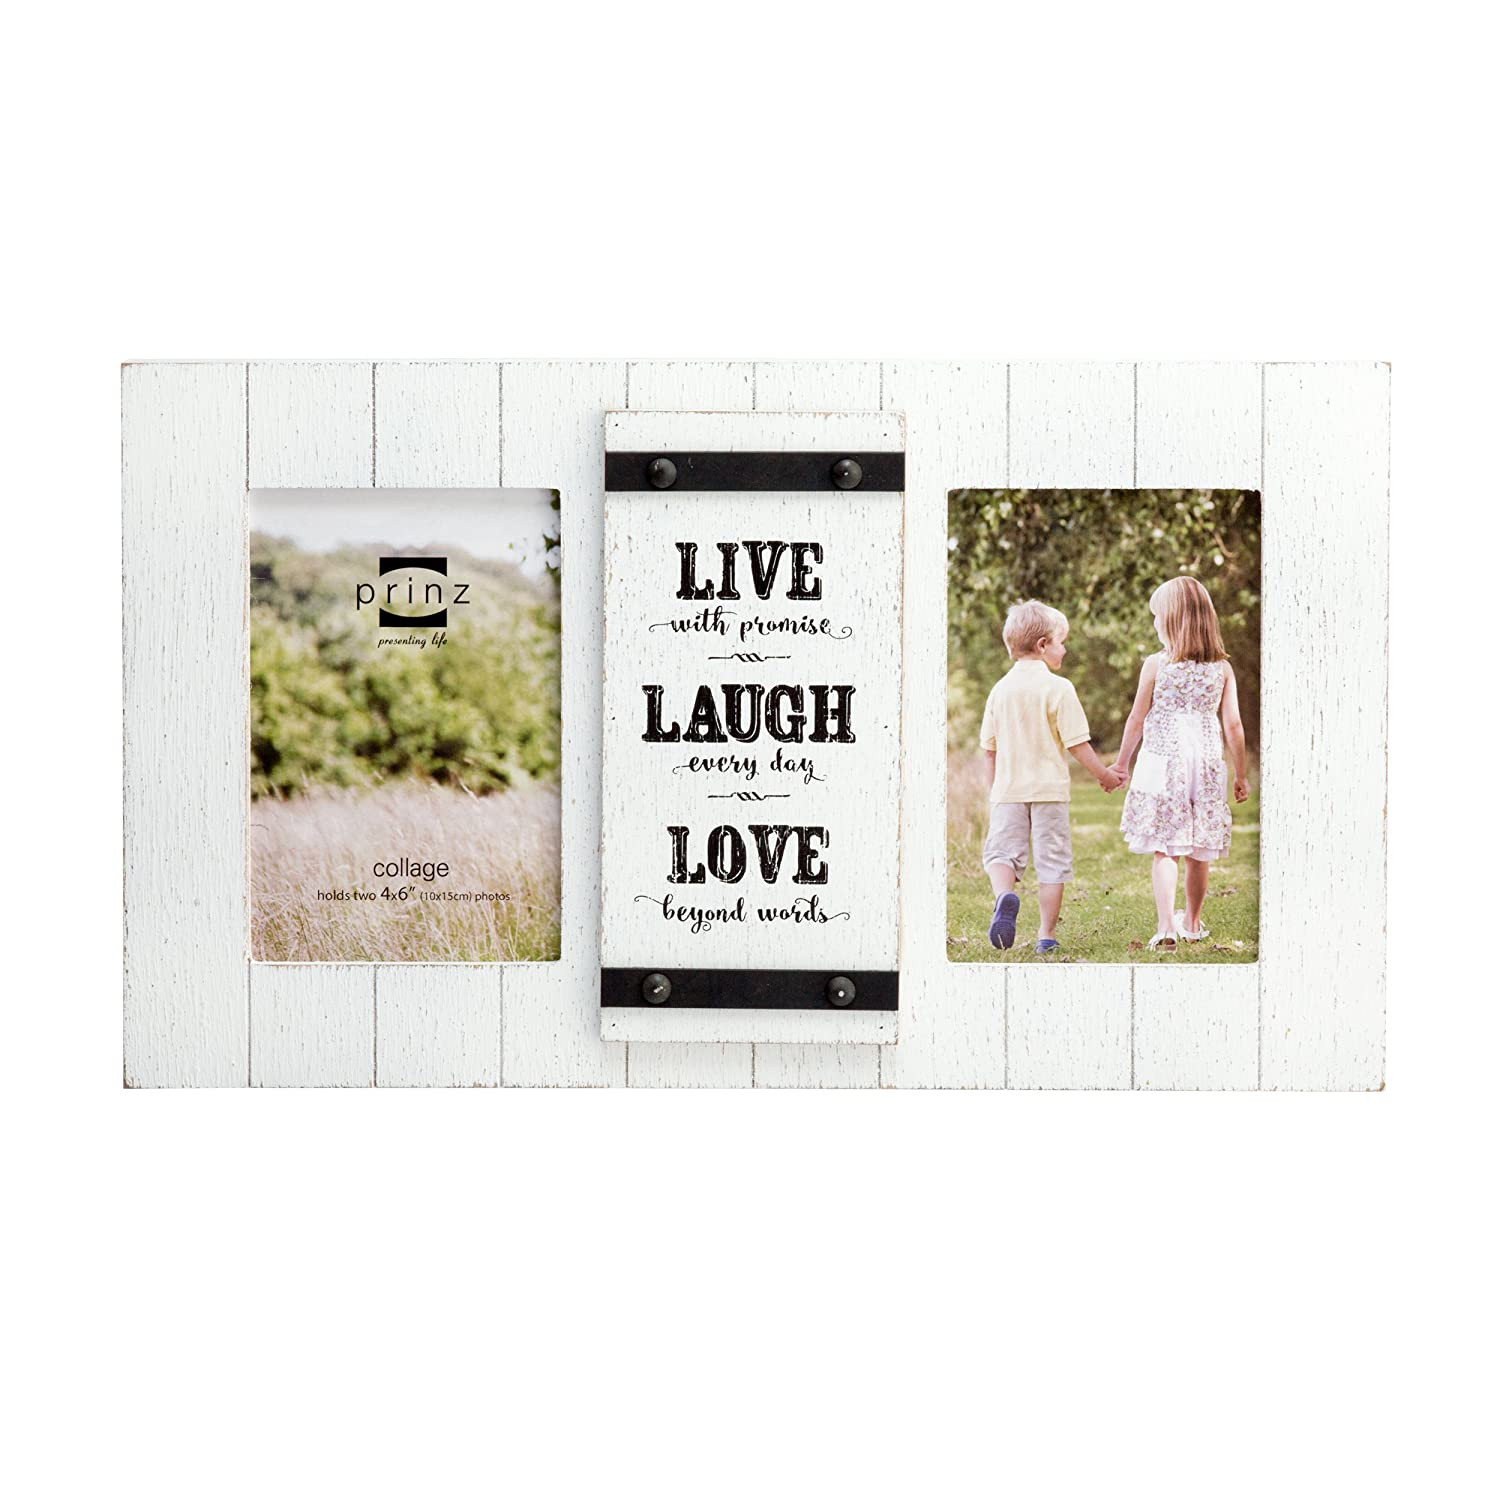 PRINZ 2 apertura Cooper madera Collage marco con \'Live, Love, Laugh ...